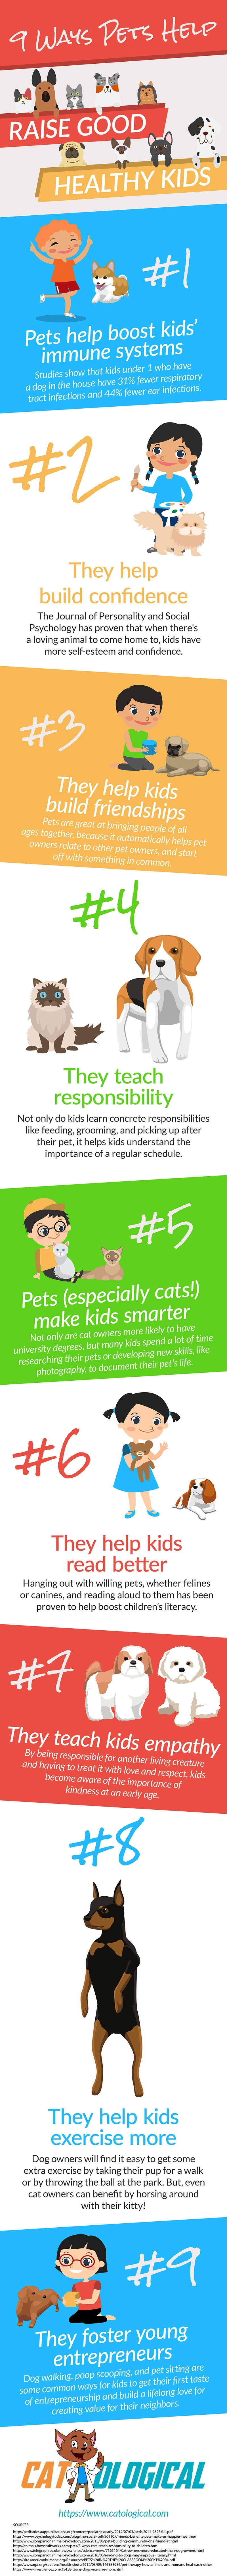 9 Ways Pets Help Raise Good, Healthy Kids